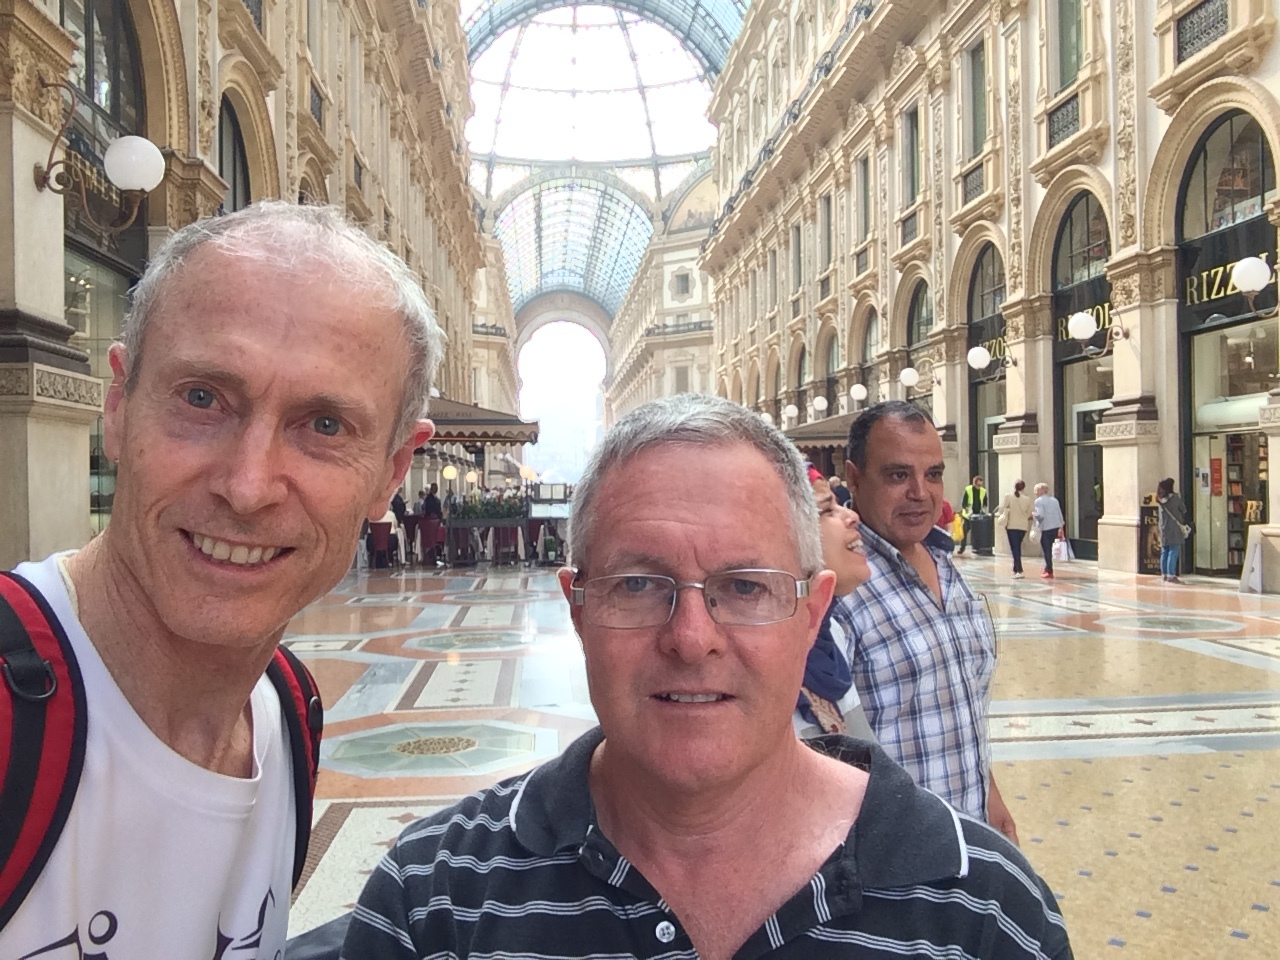 Shopping with Webes in Galleria, Milan